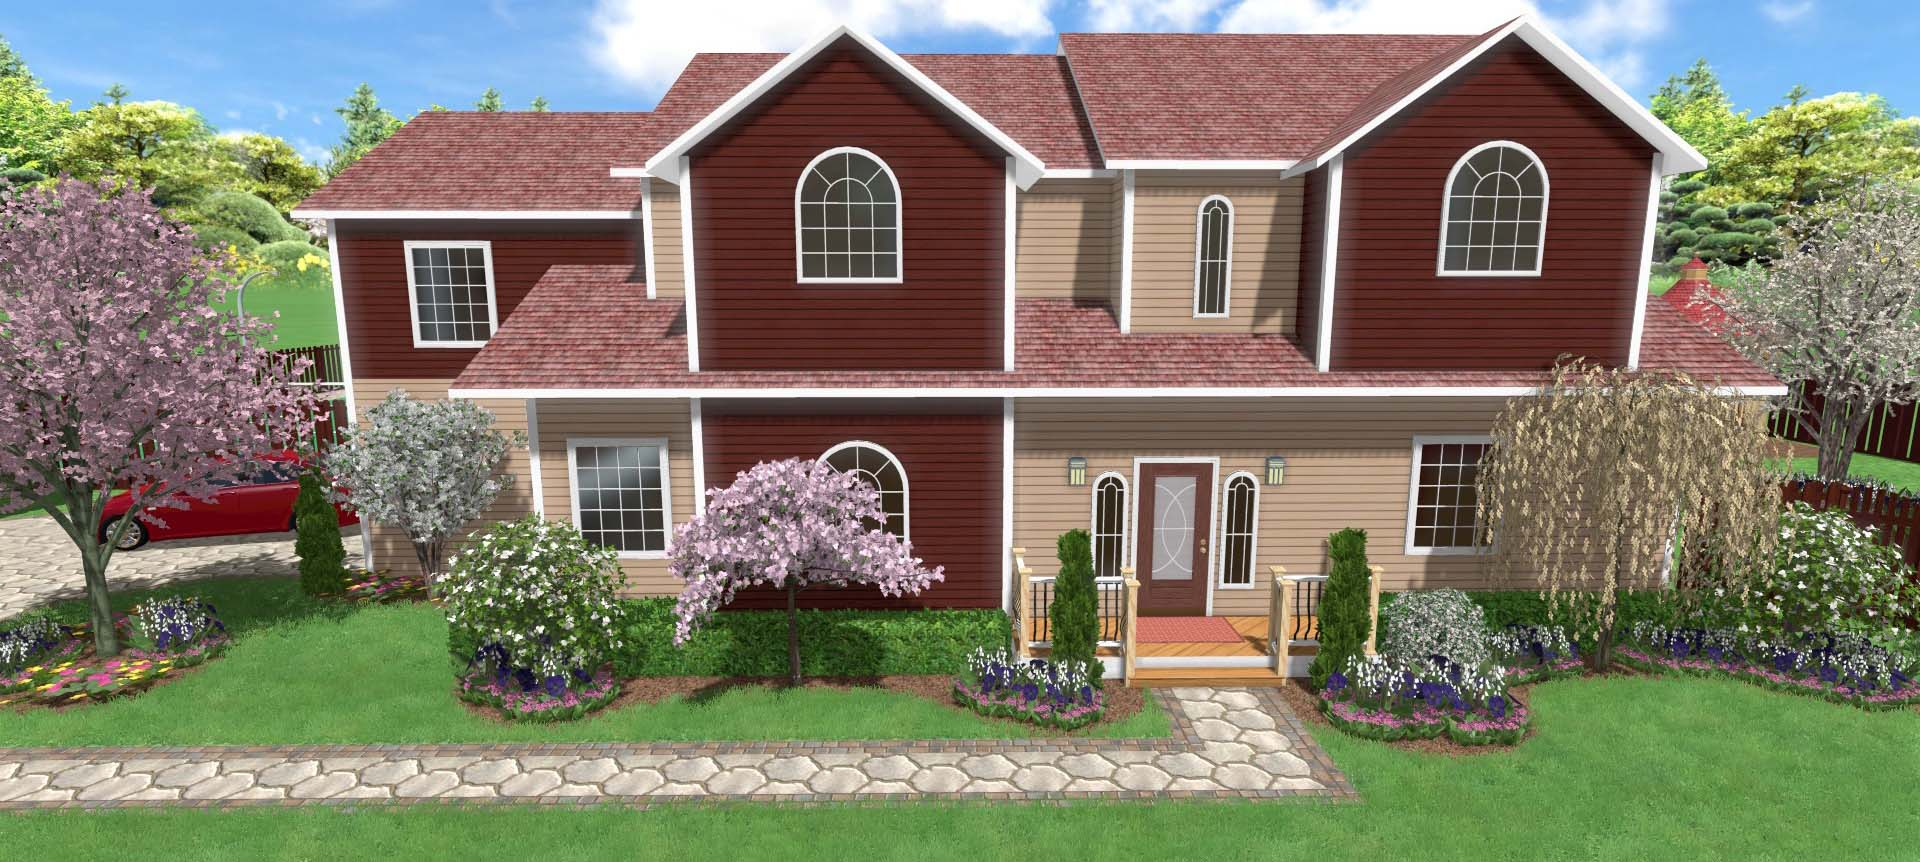 Home landscaping software House backyard landscape